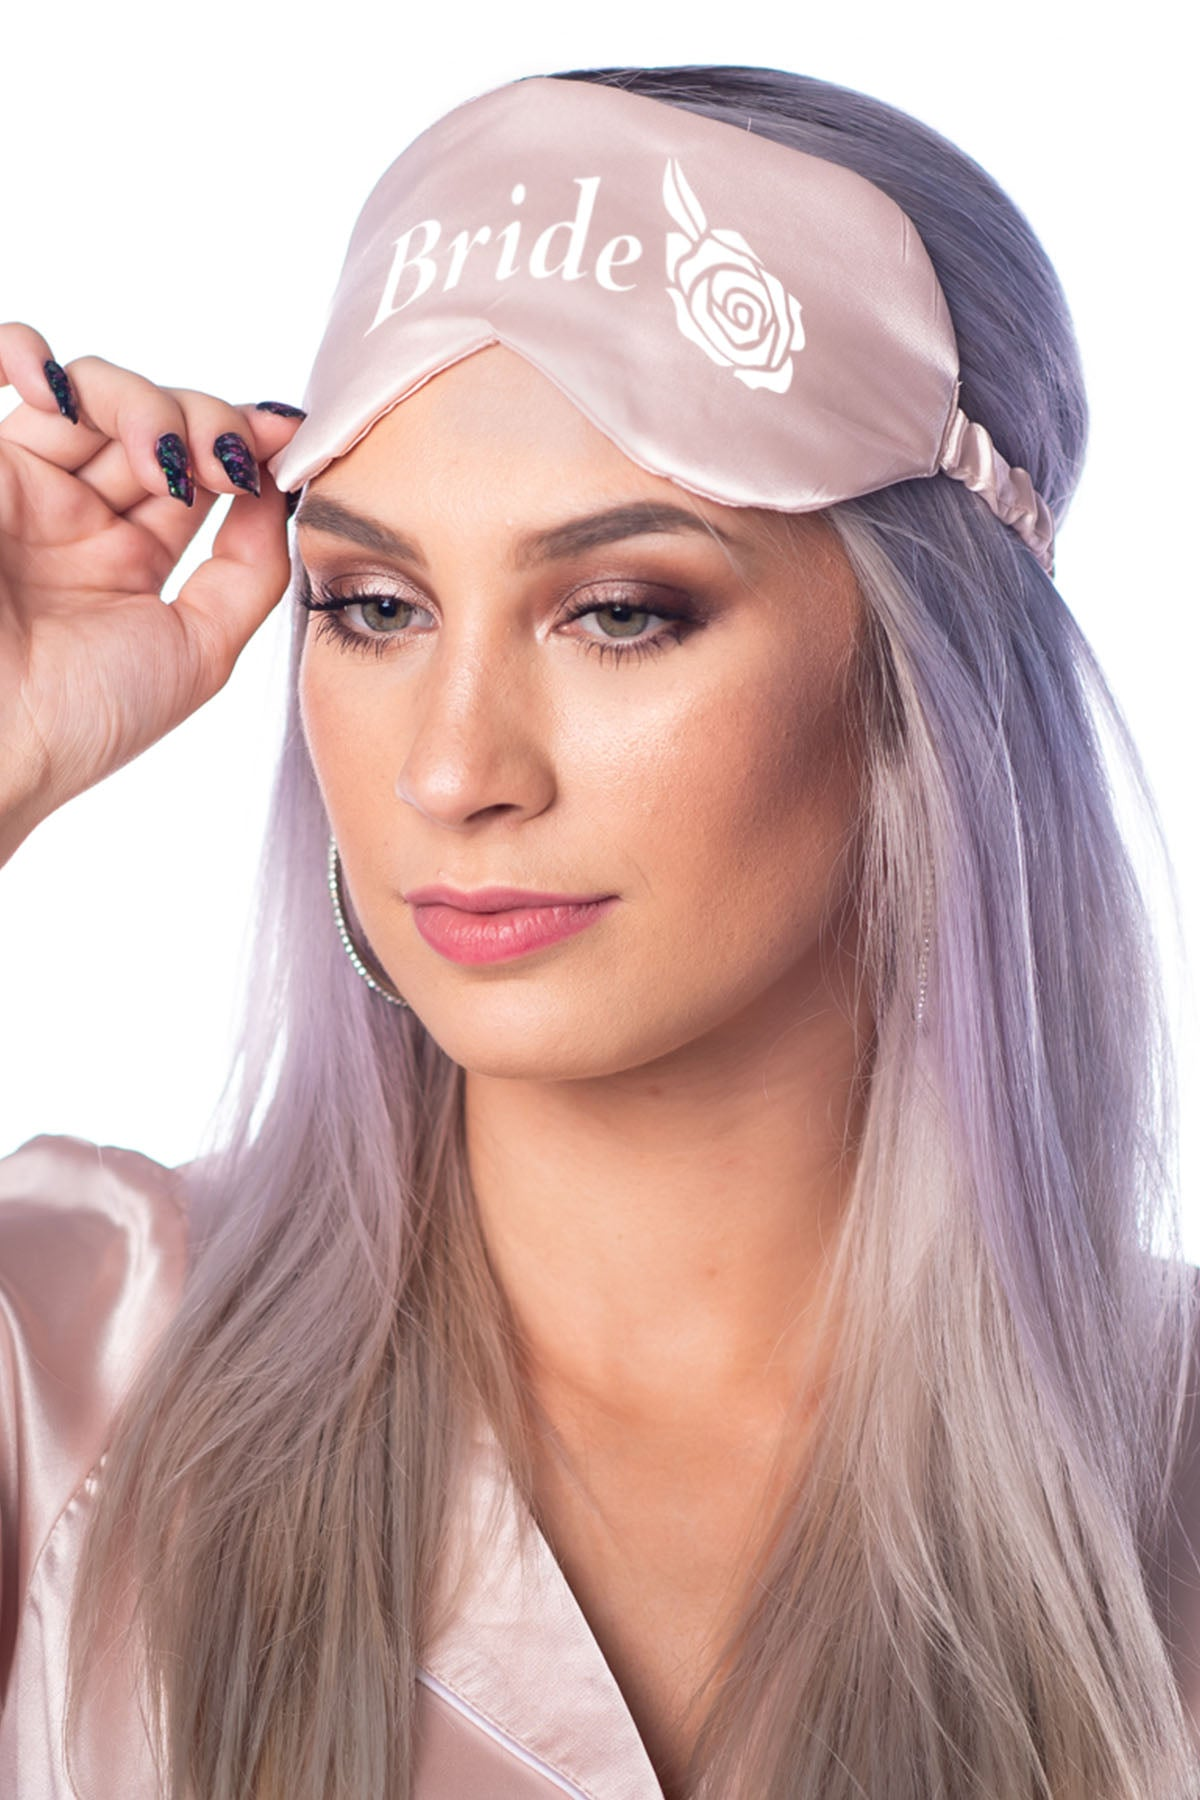 Eye Mask - Bride Rose